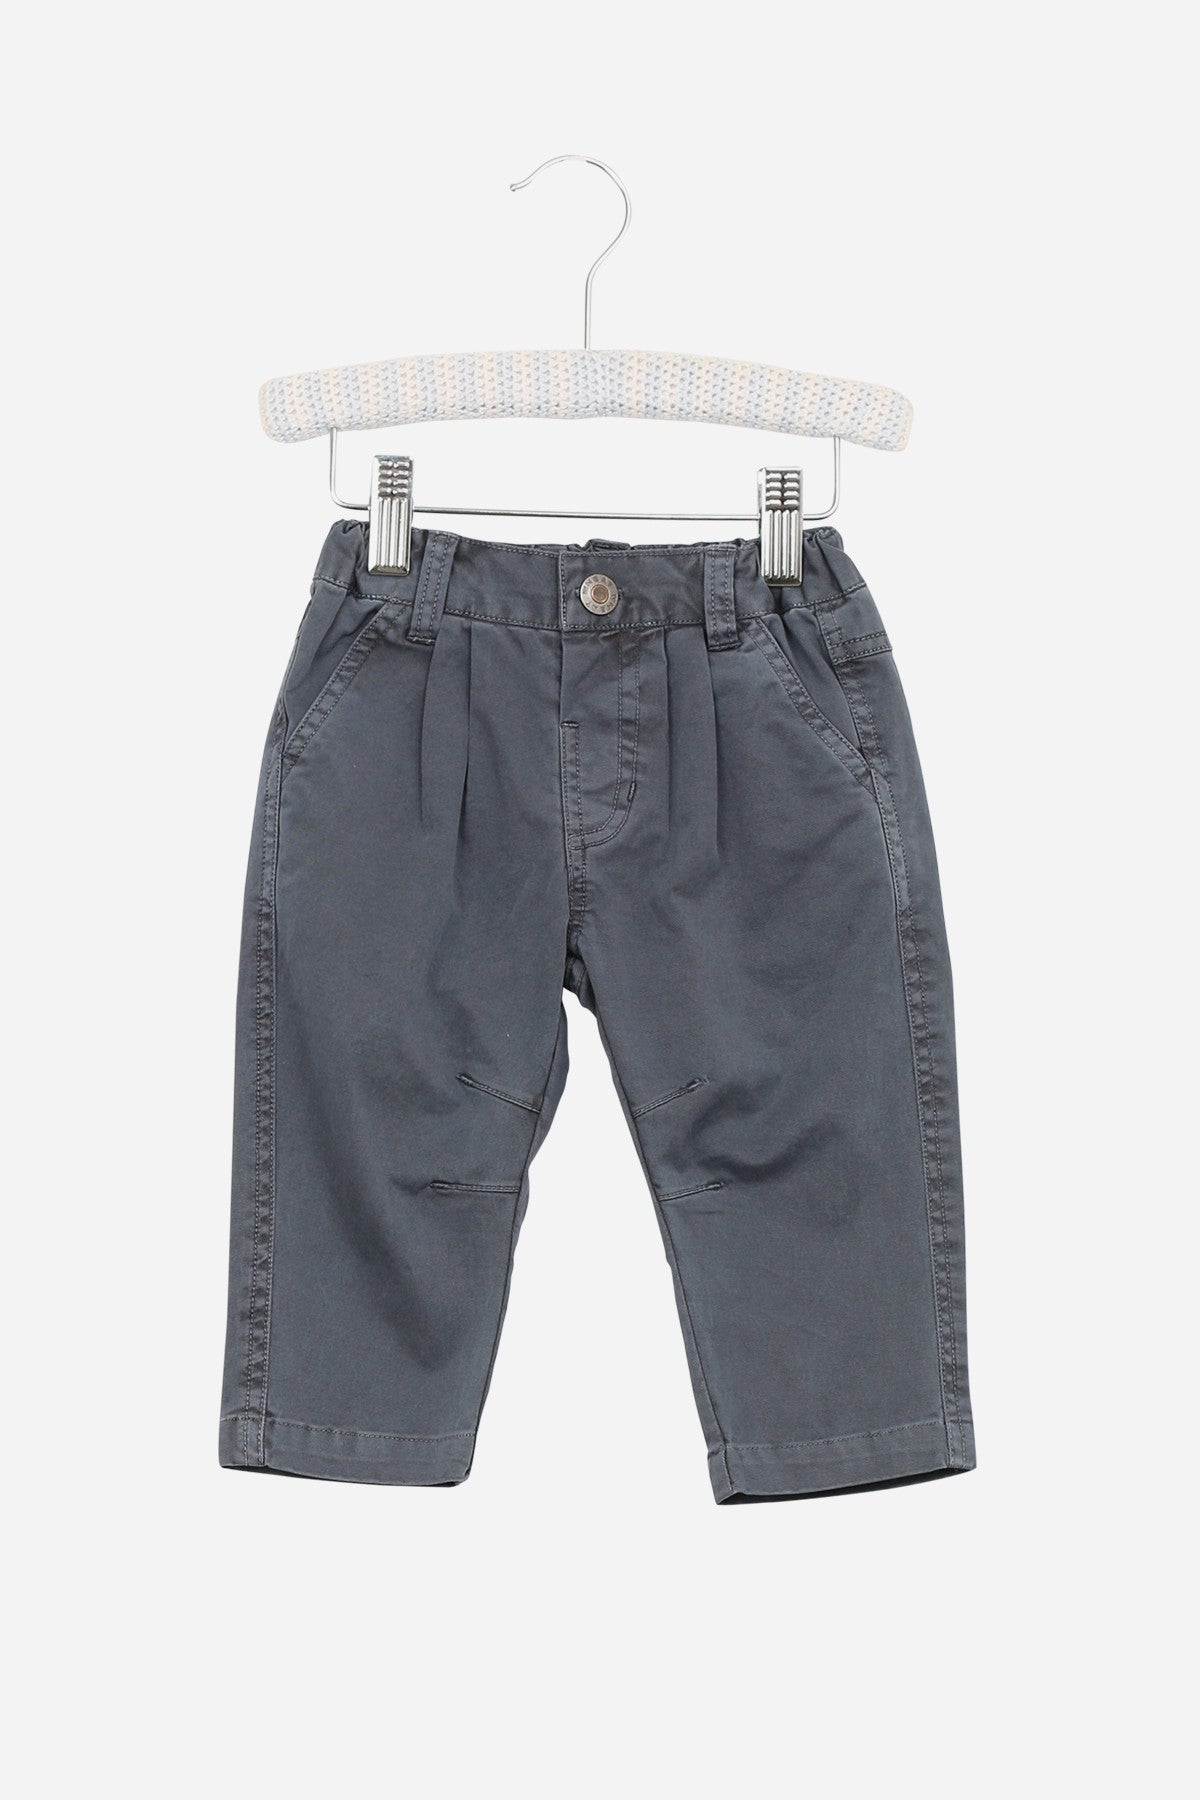 Old Navy has a collection of chino pants that provides a stylish look and a comfortable fit. Choose from chino pants in a wide selection of fabulous styles and colors.